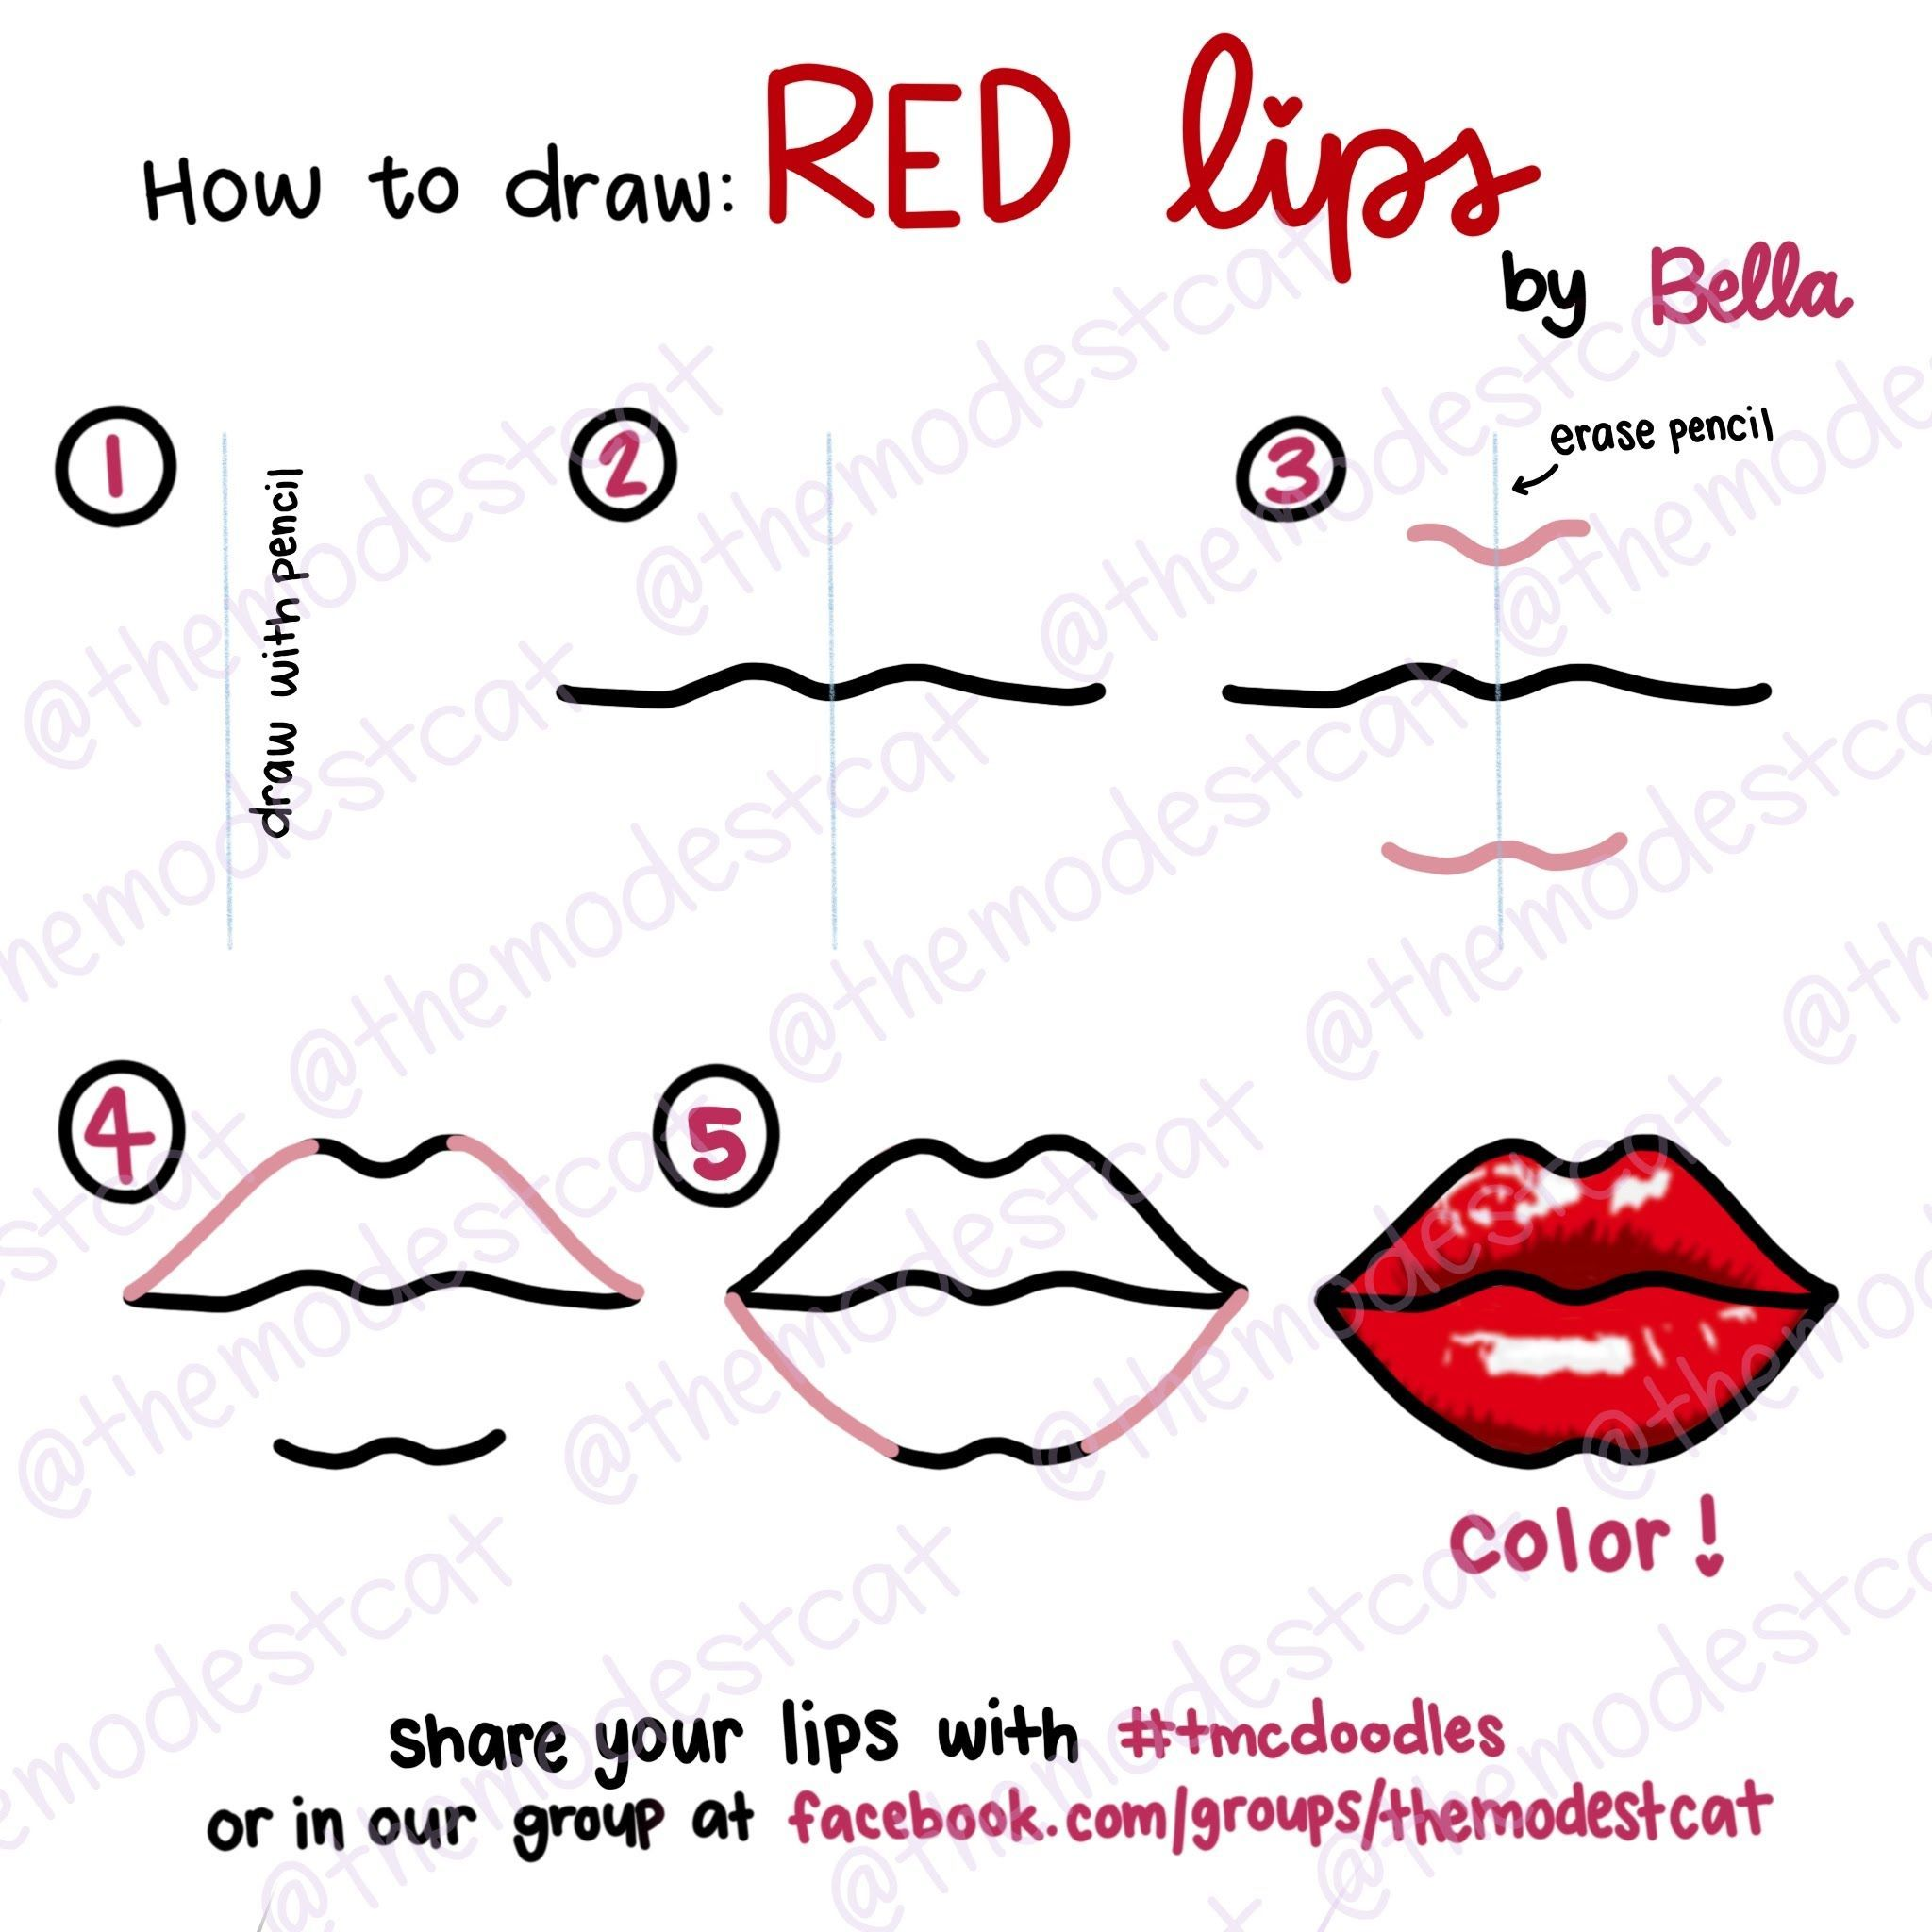 Today S Doodle Prompt Is Red Lips I Ll Show You An Easy Way To